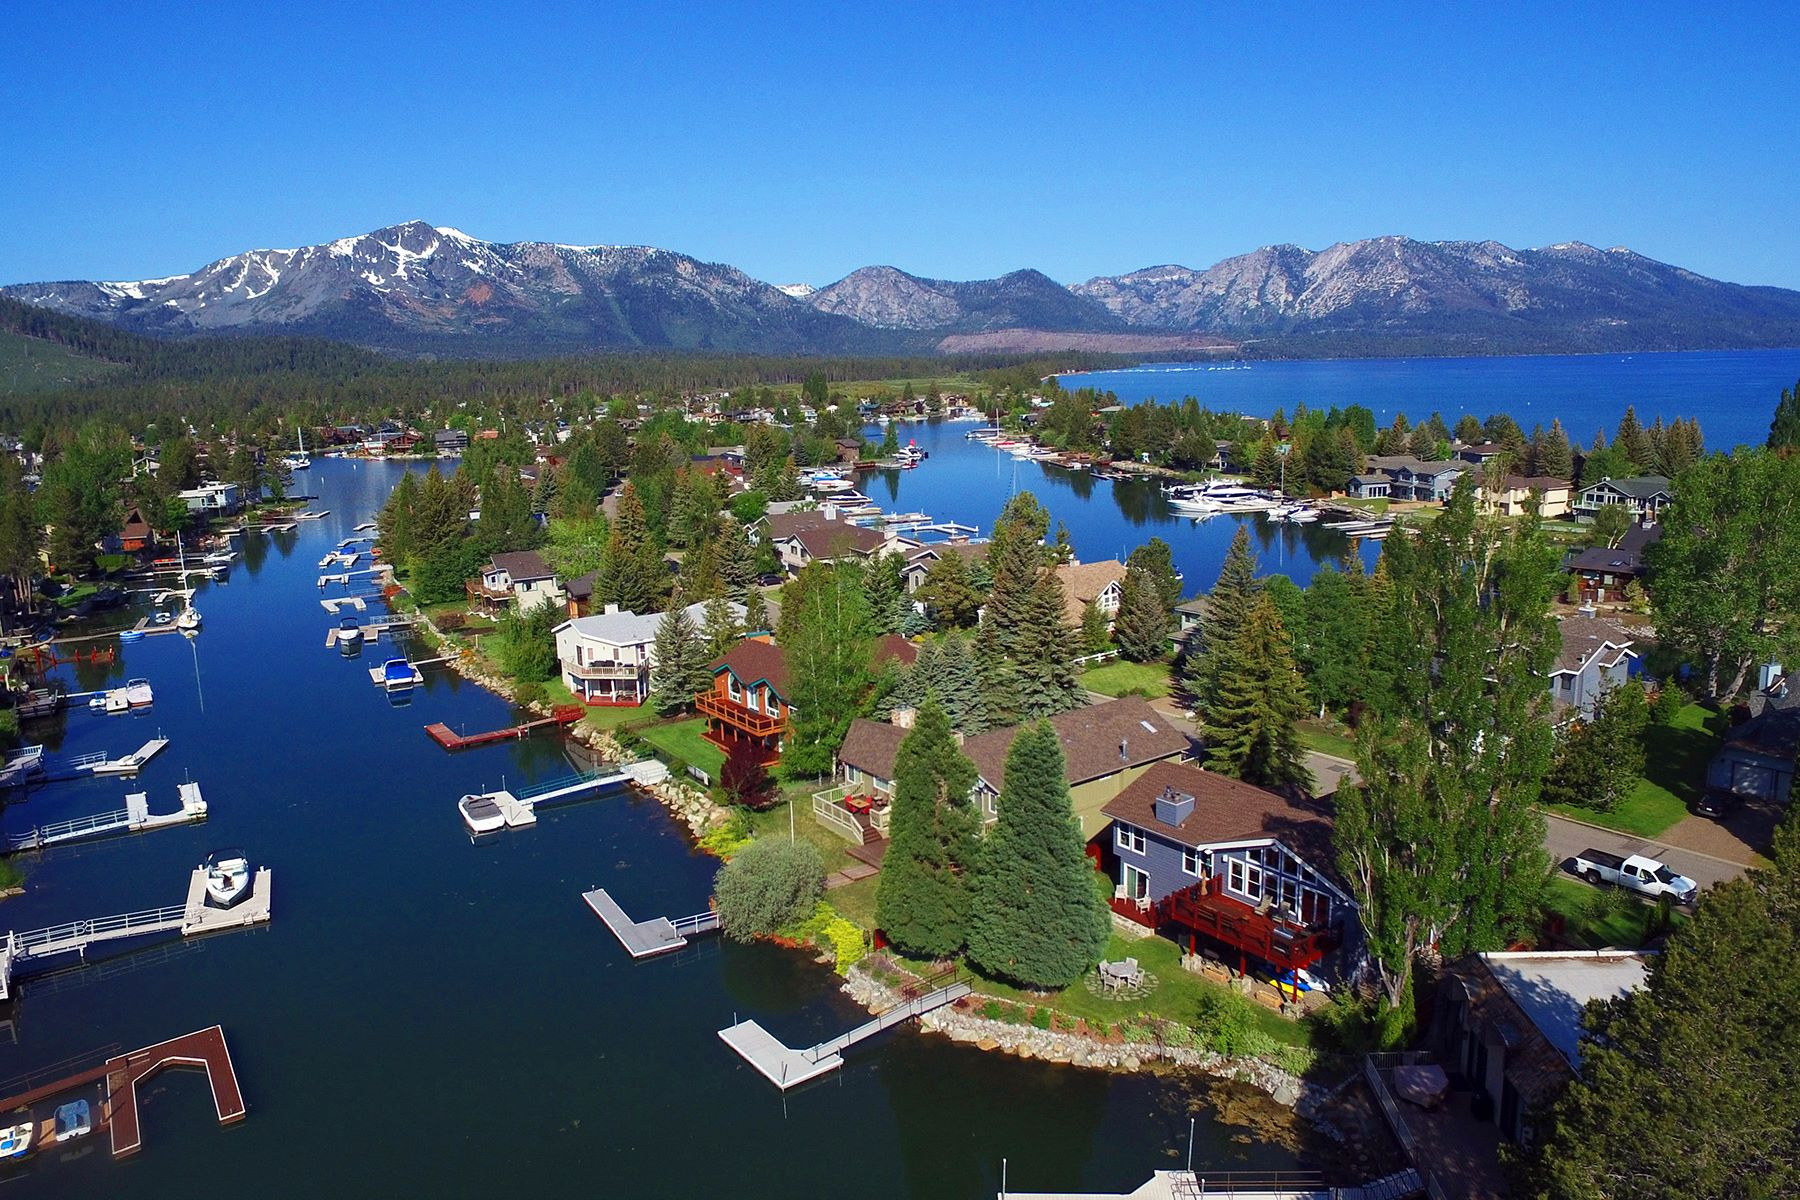 Single Family Home for Active at Waterfront Beauty in the Tahoe Keys 2246 White Sands Drive South Lake Tahoe, California 96150 United States